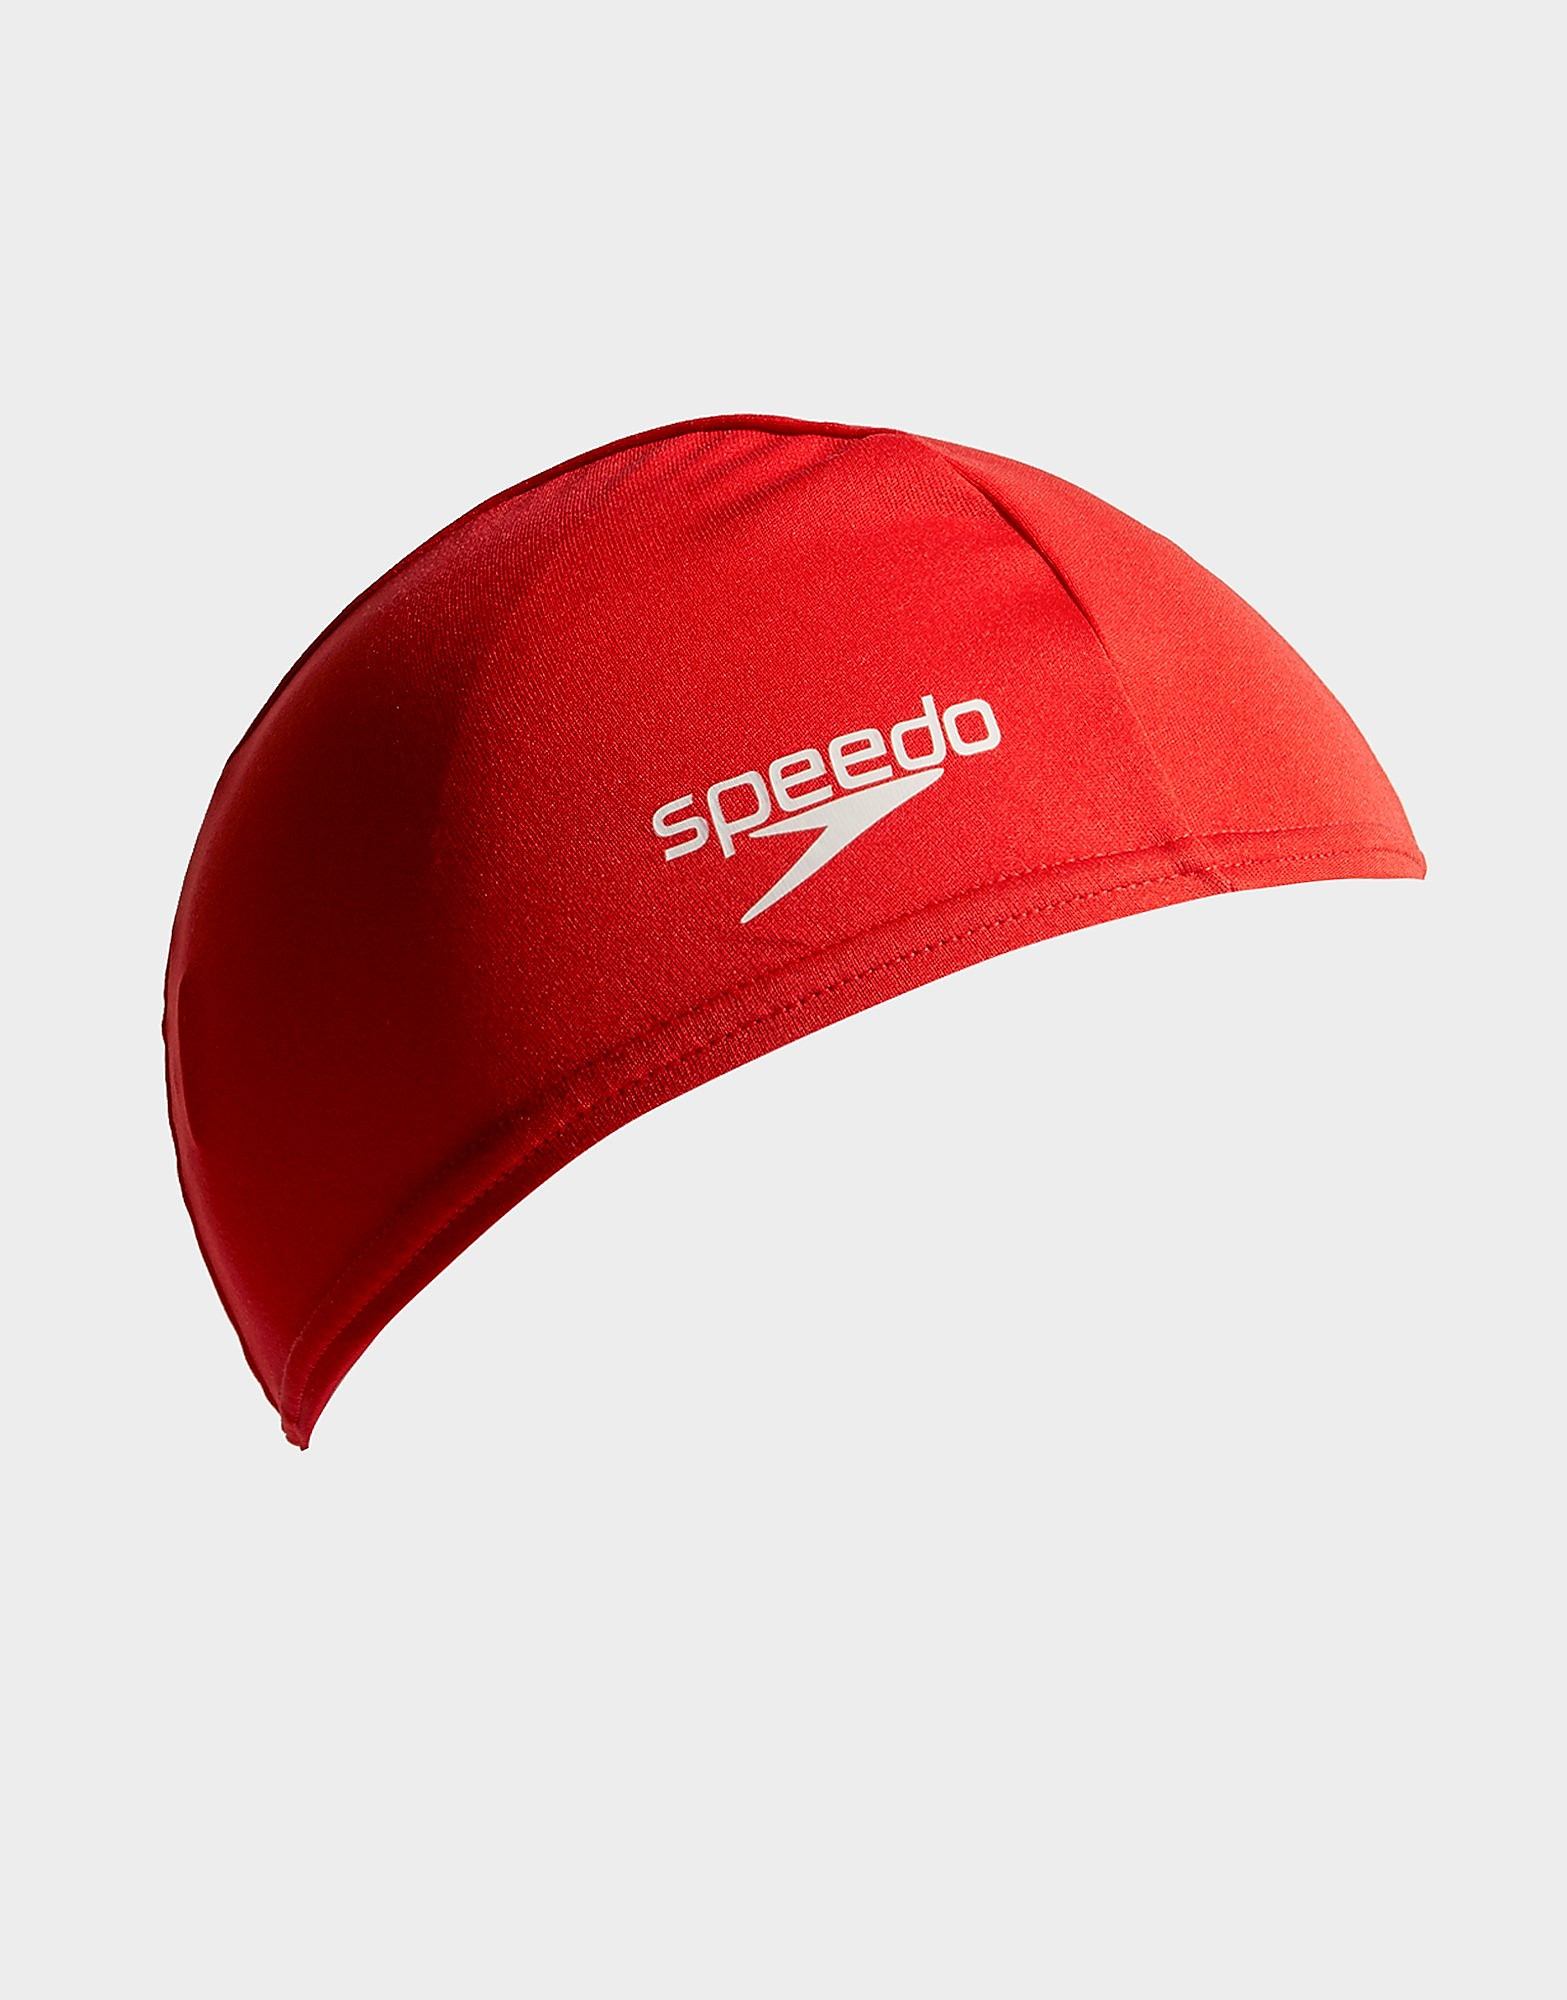 Speedo Plain Junior Swim Cap